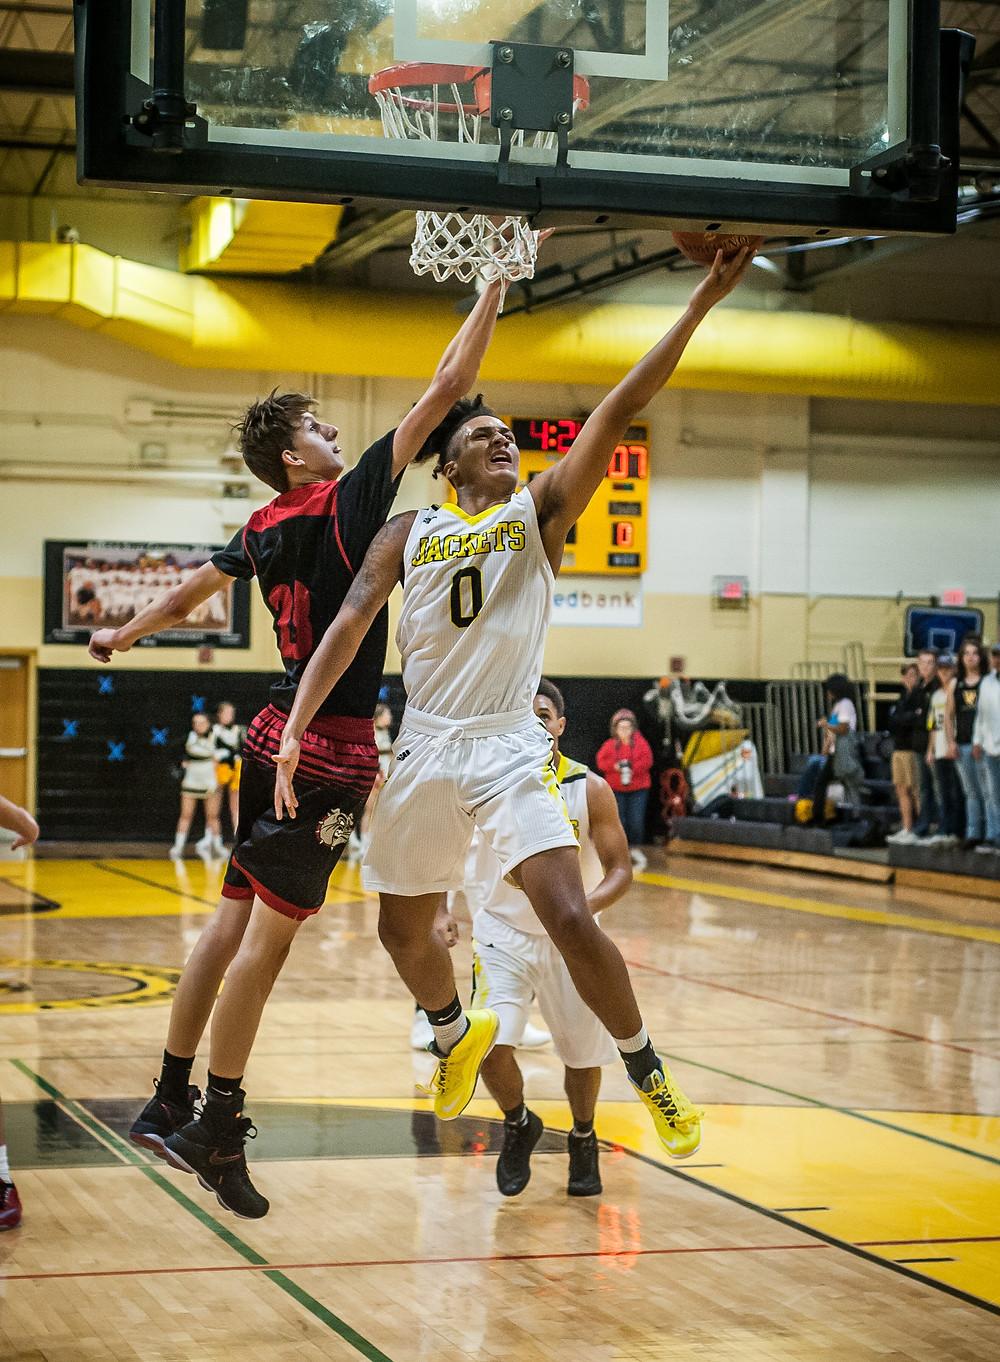 SENIOR NICK SMITH attempts a layup in the Jackets win over Dunbar on Monday Nov. 27. (Photo by Bill Caine)